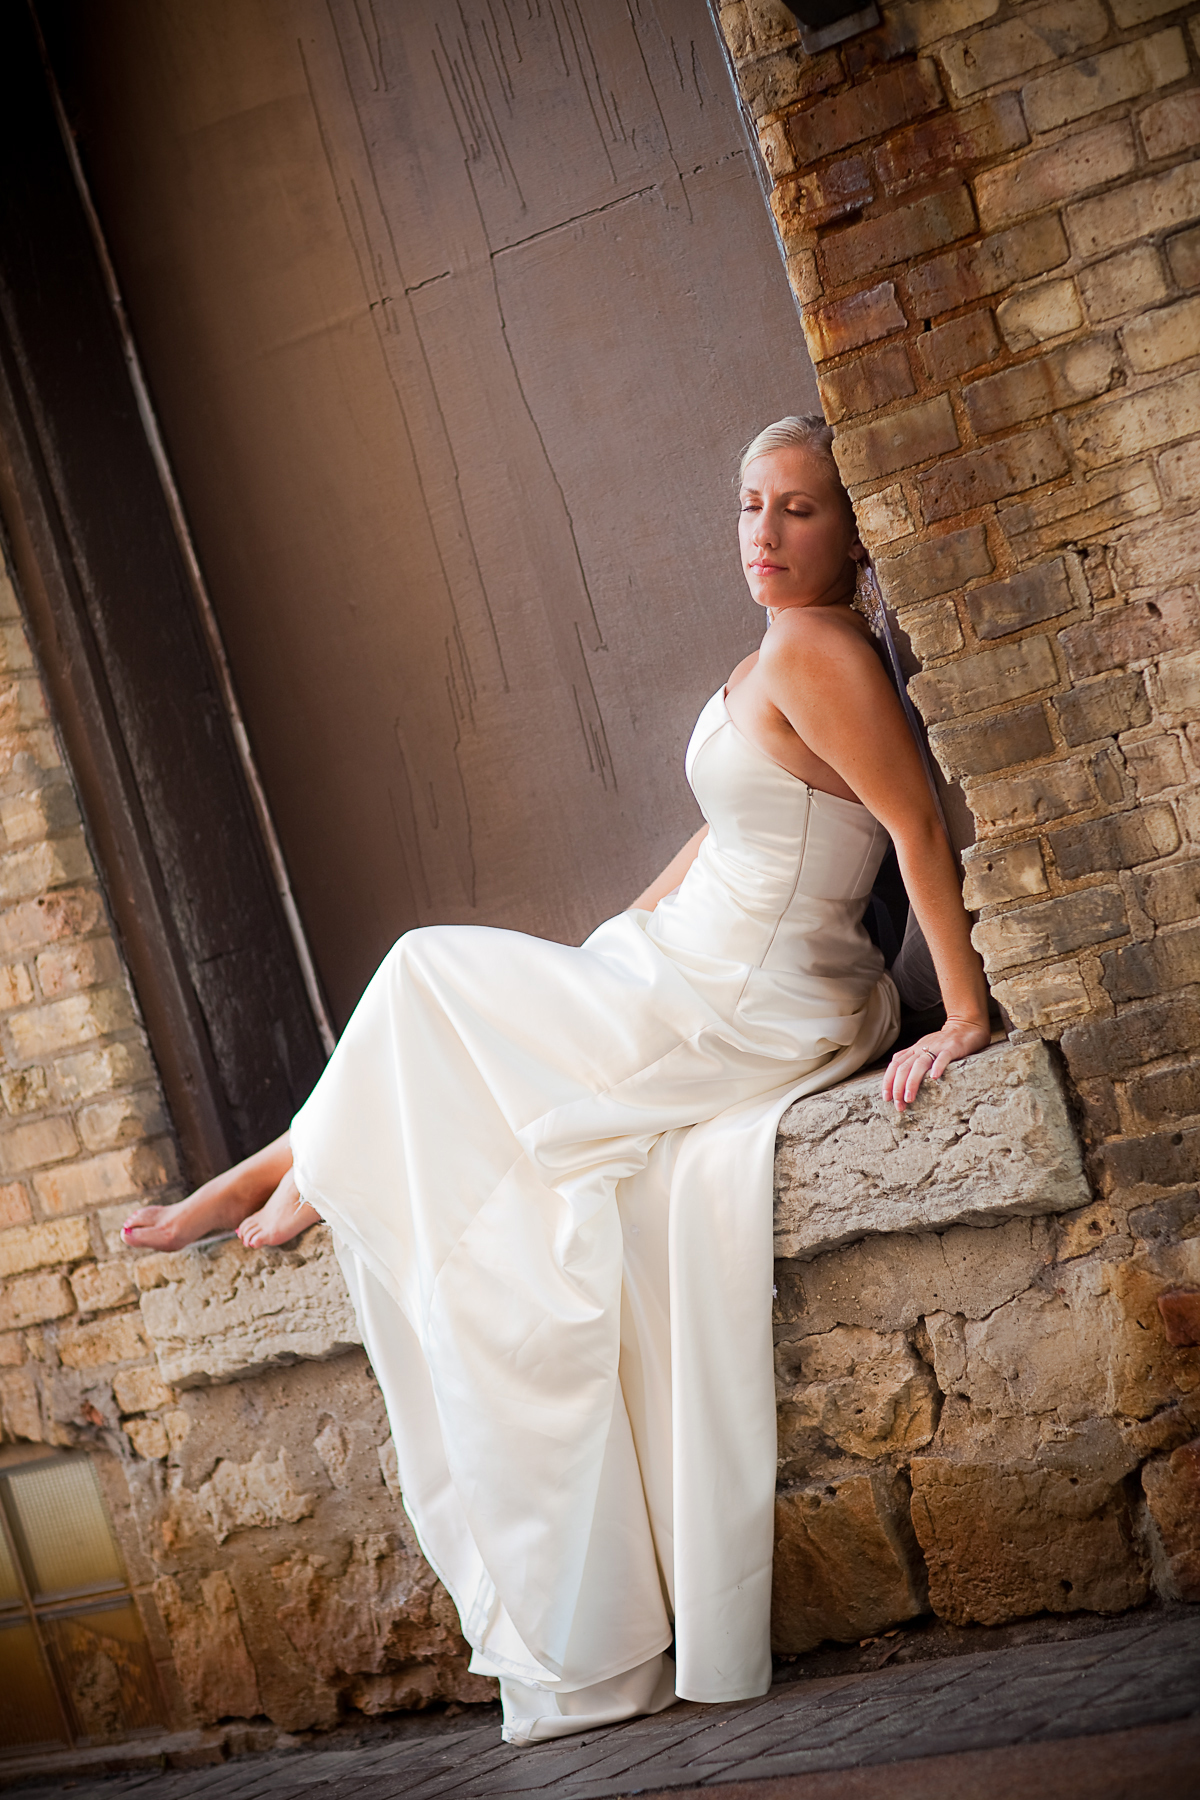 Wedding Dresses, Fashion, dress, Bride, The, Trash, Urban, Alley, Pheifer photography llc